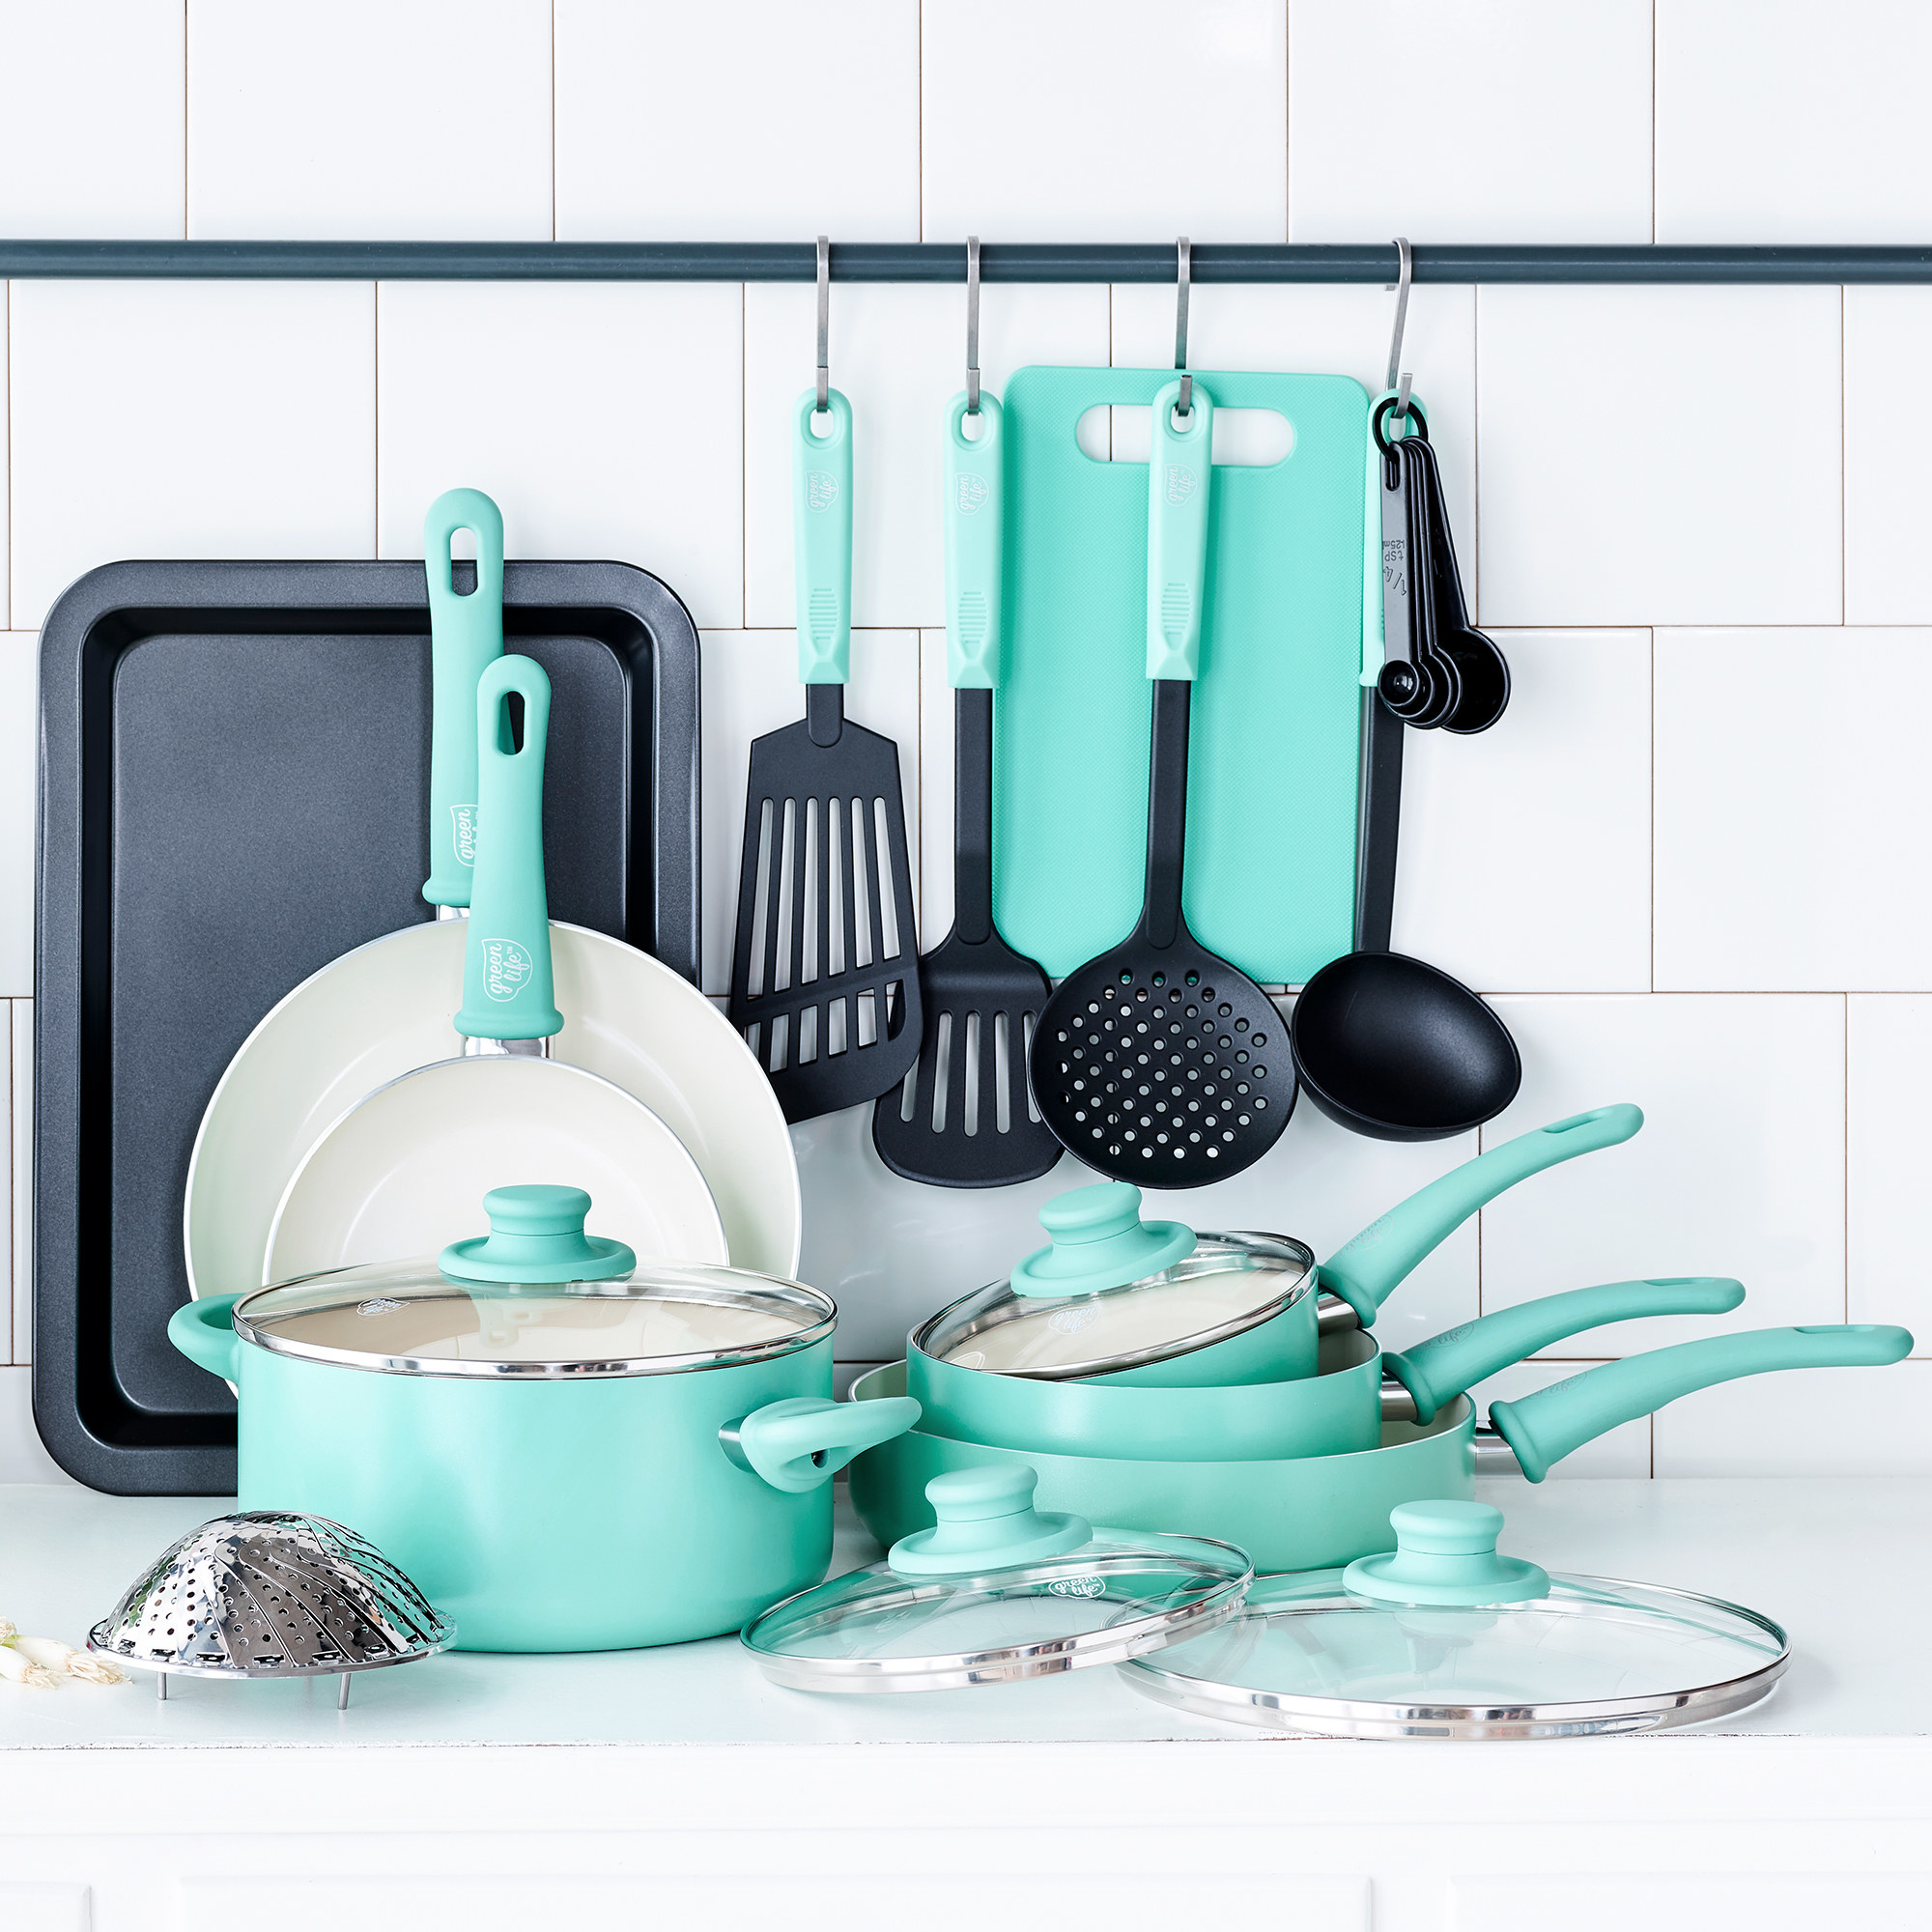 pots, pans, and cooking utensils in a light turquoise color